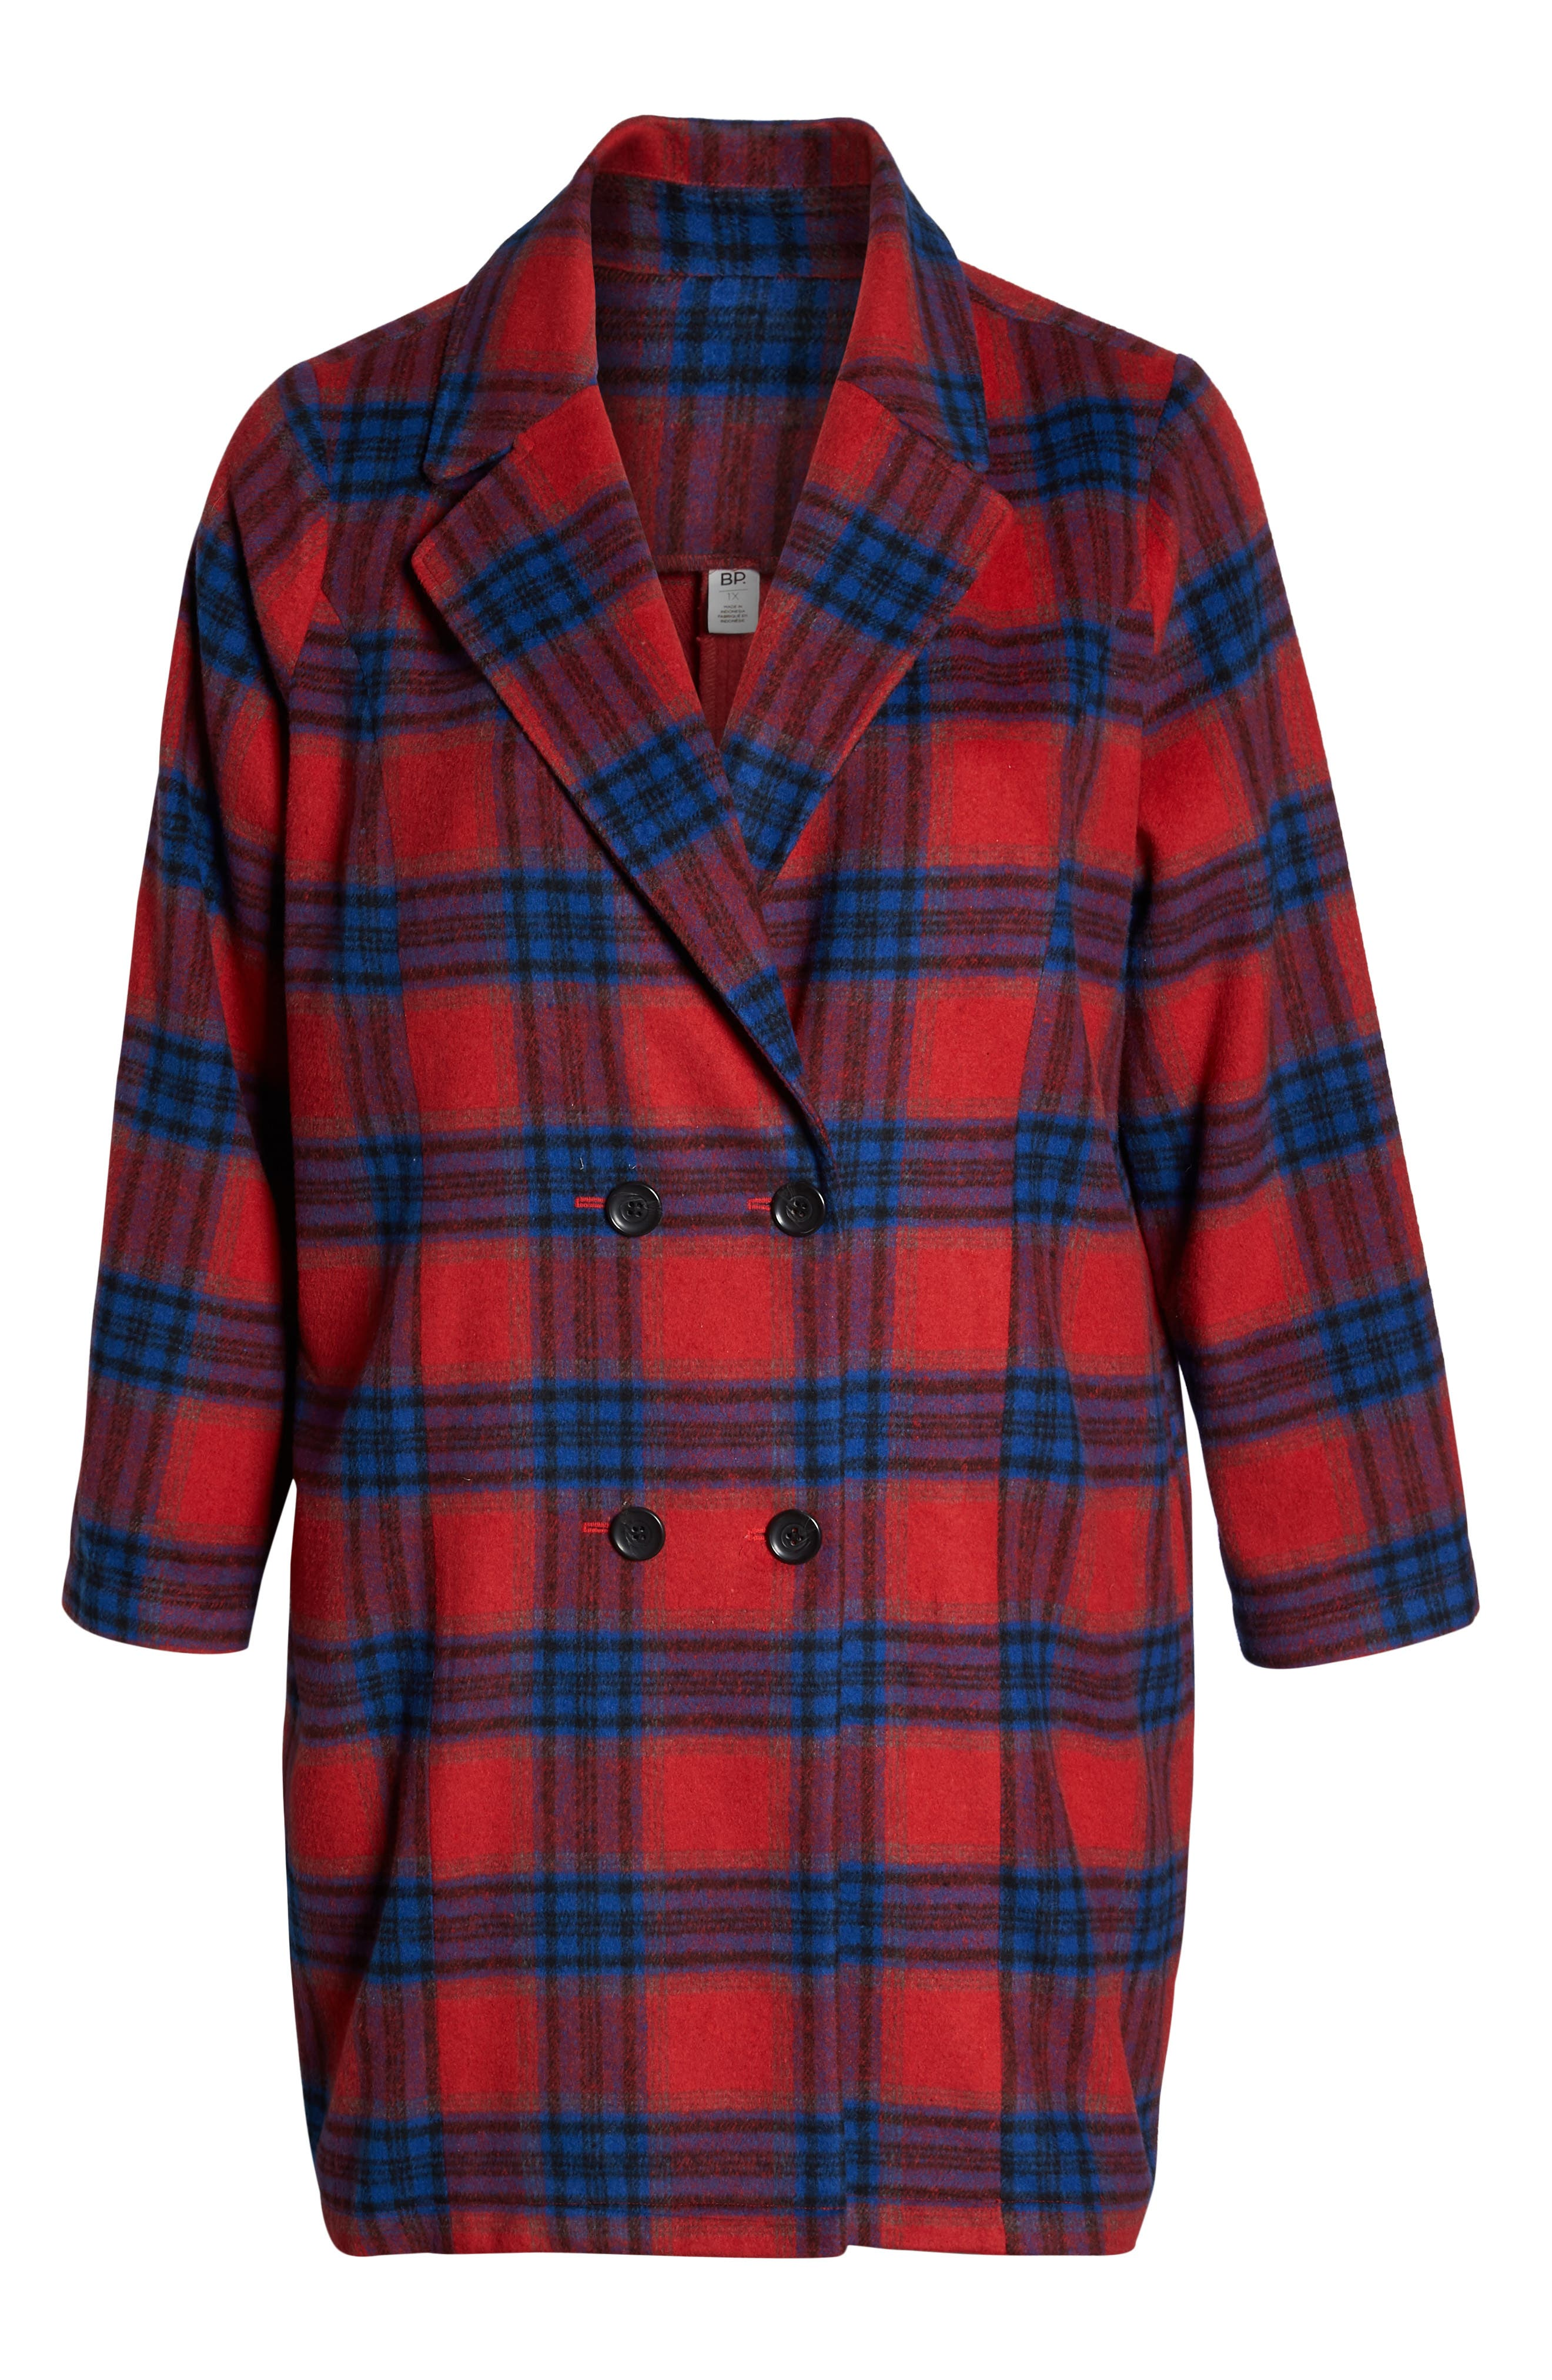 Double Breasted Plaid Jacket,                             Alternate thumbnail 6, color,                             RED CHINOISE RITA PLAID